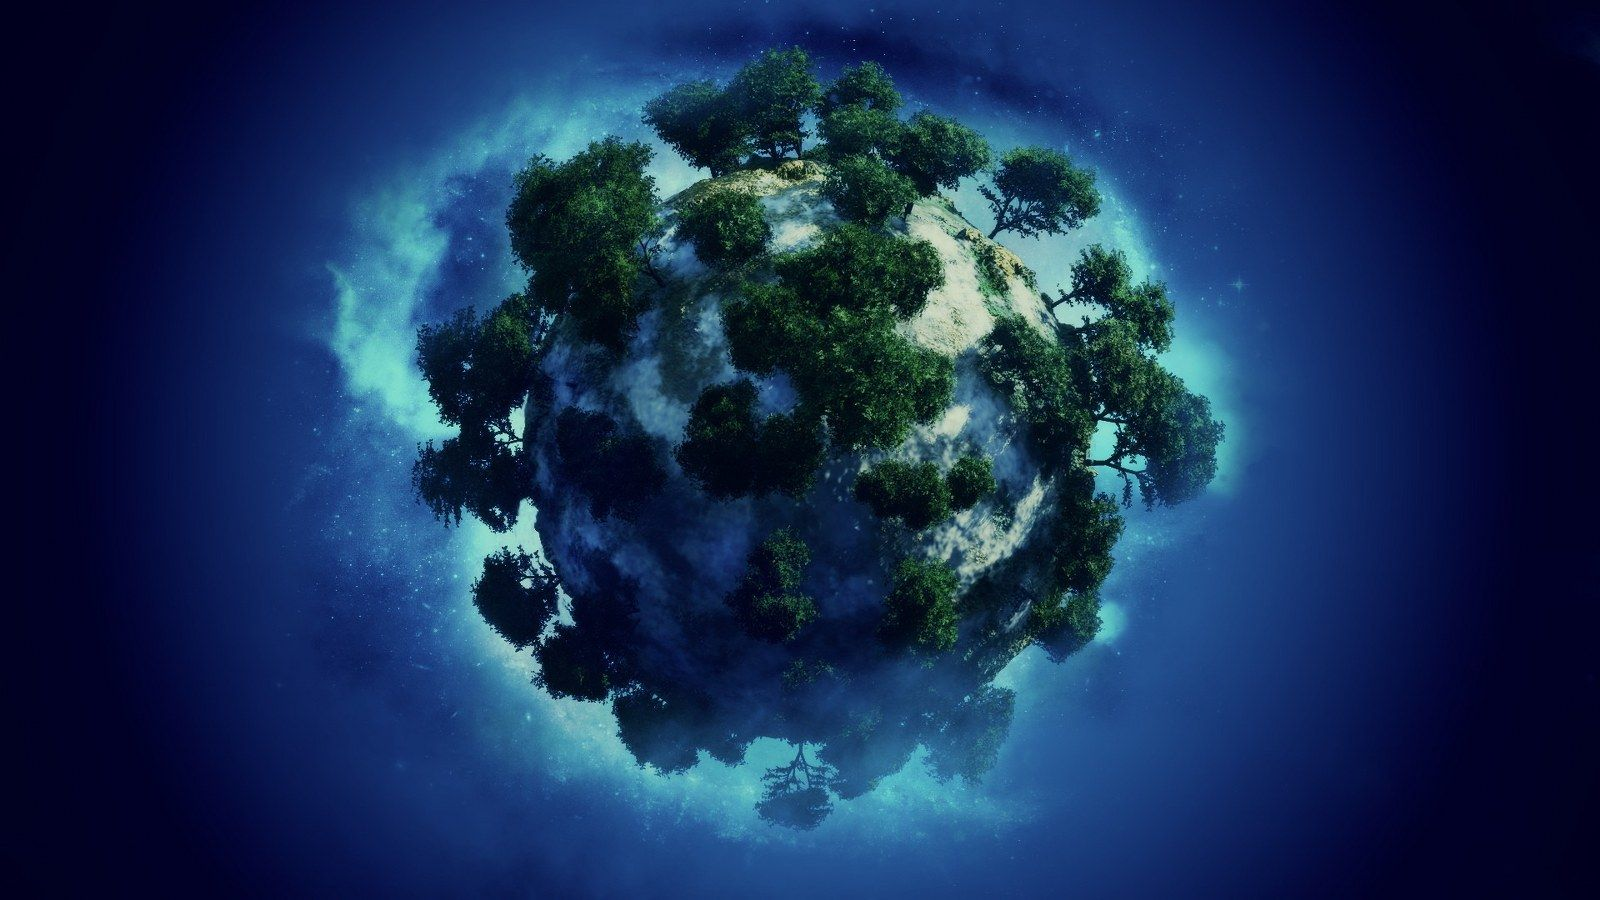 Earth Day Wallpaper and Background Image 1600x900 ID695878 1600x900